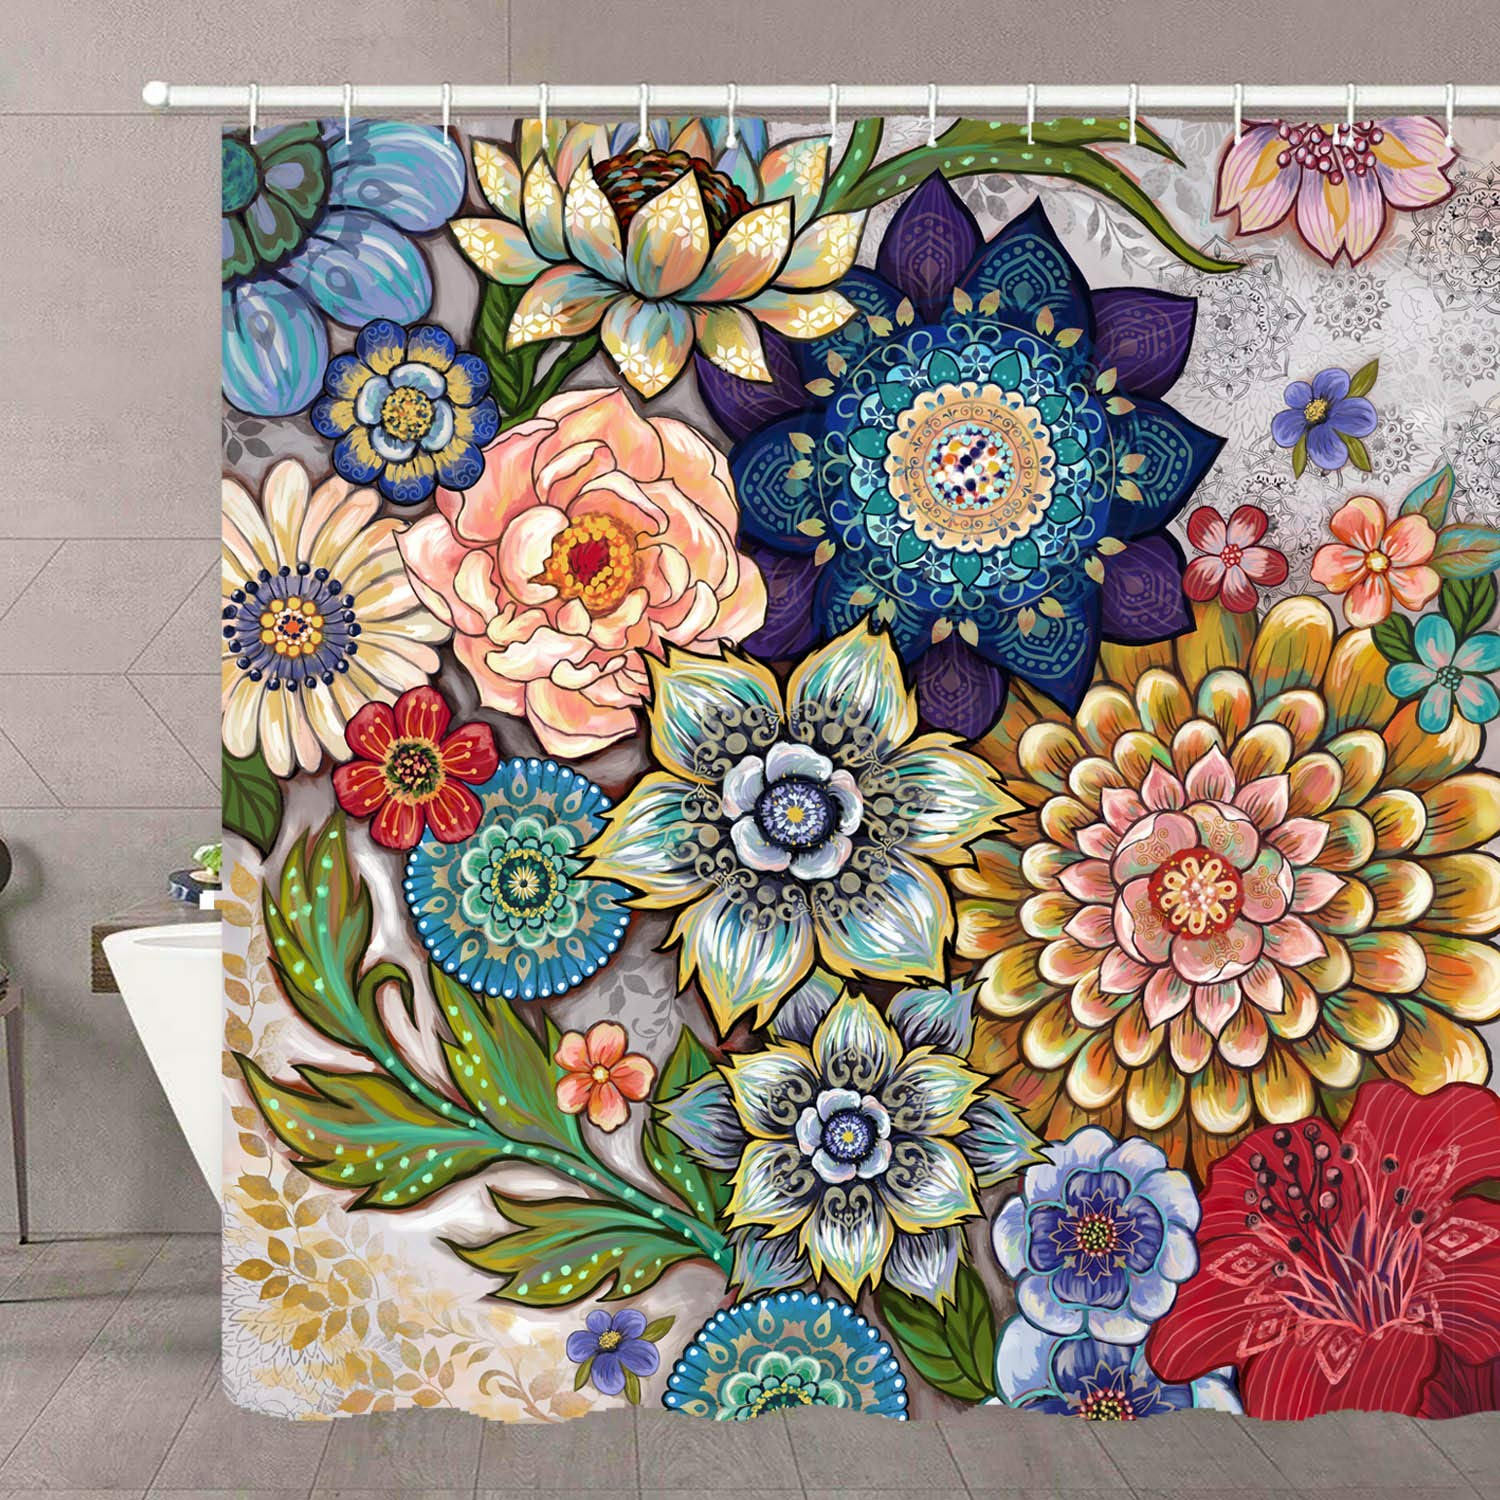 Boho Floral Bright Fabric Blossom Shower Curtain With 12 Hooks Shower Curtains Aliexpress